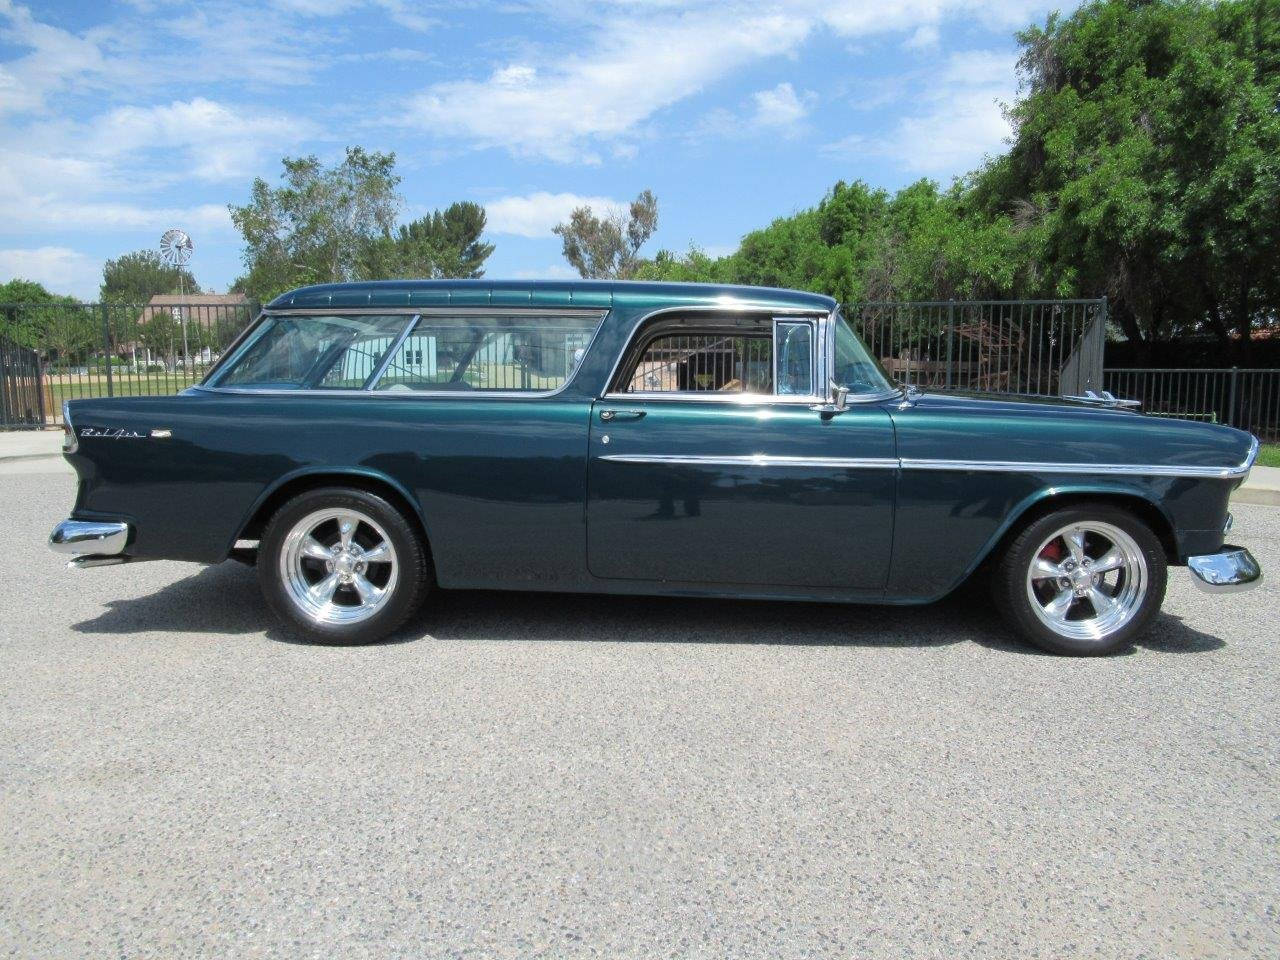 1955 Chevrolet Nomad For Sale (picture 2 of 6)